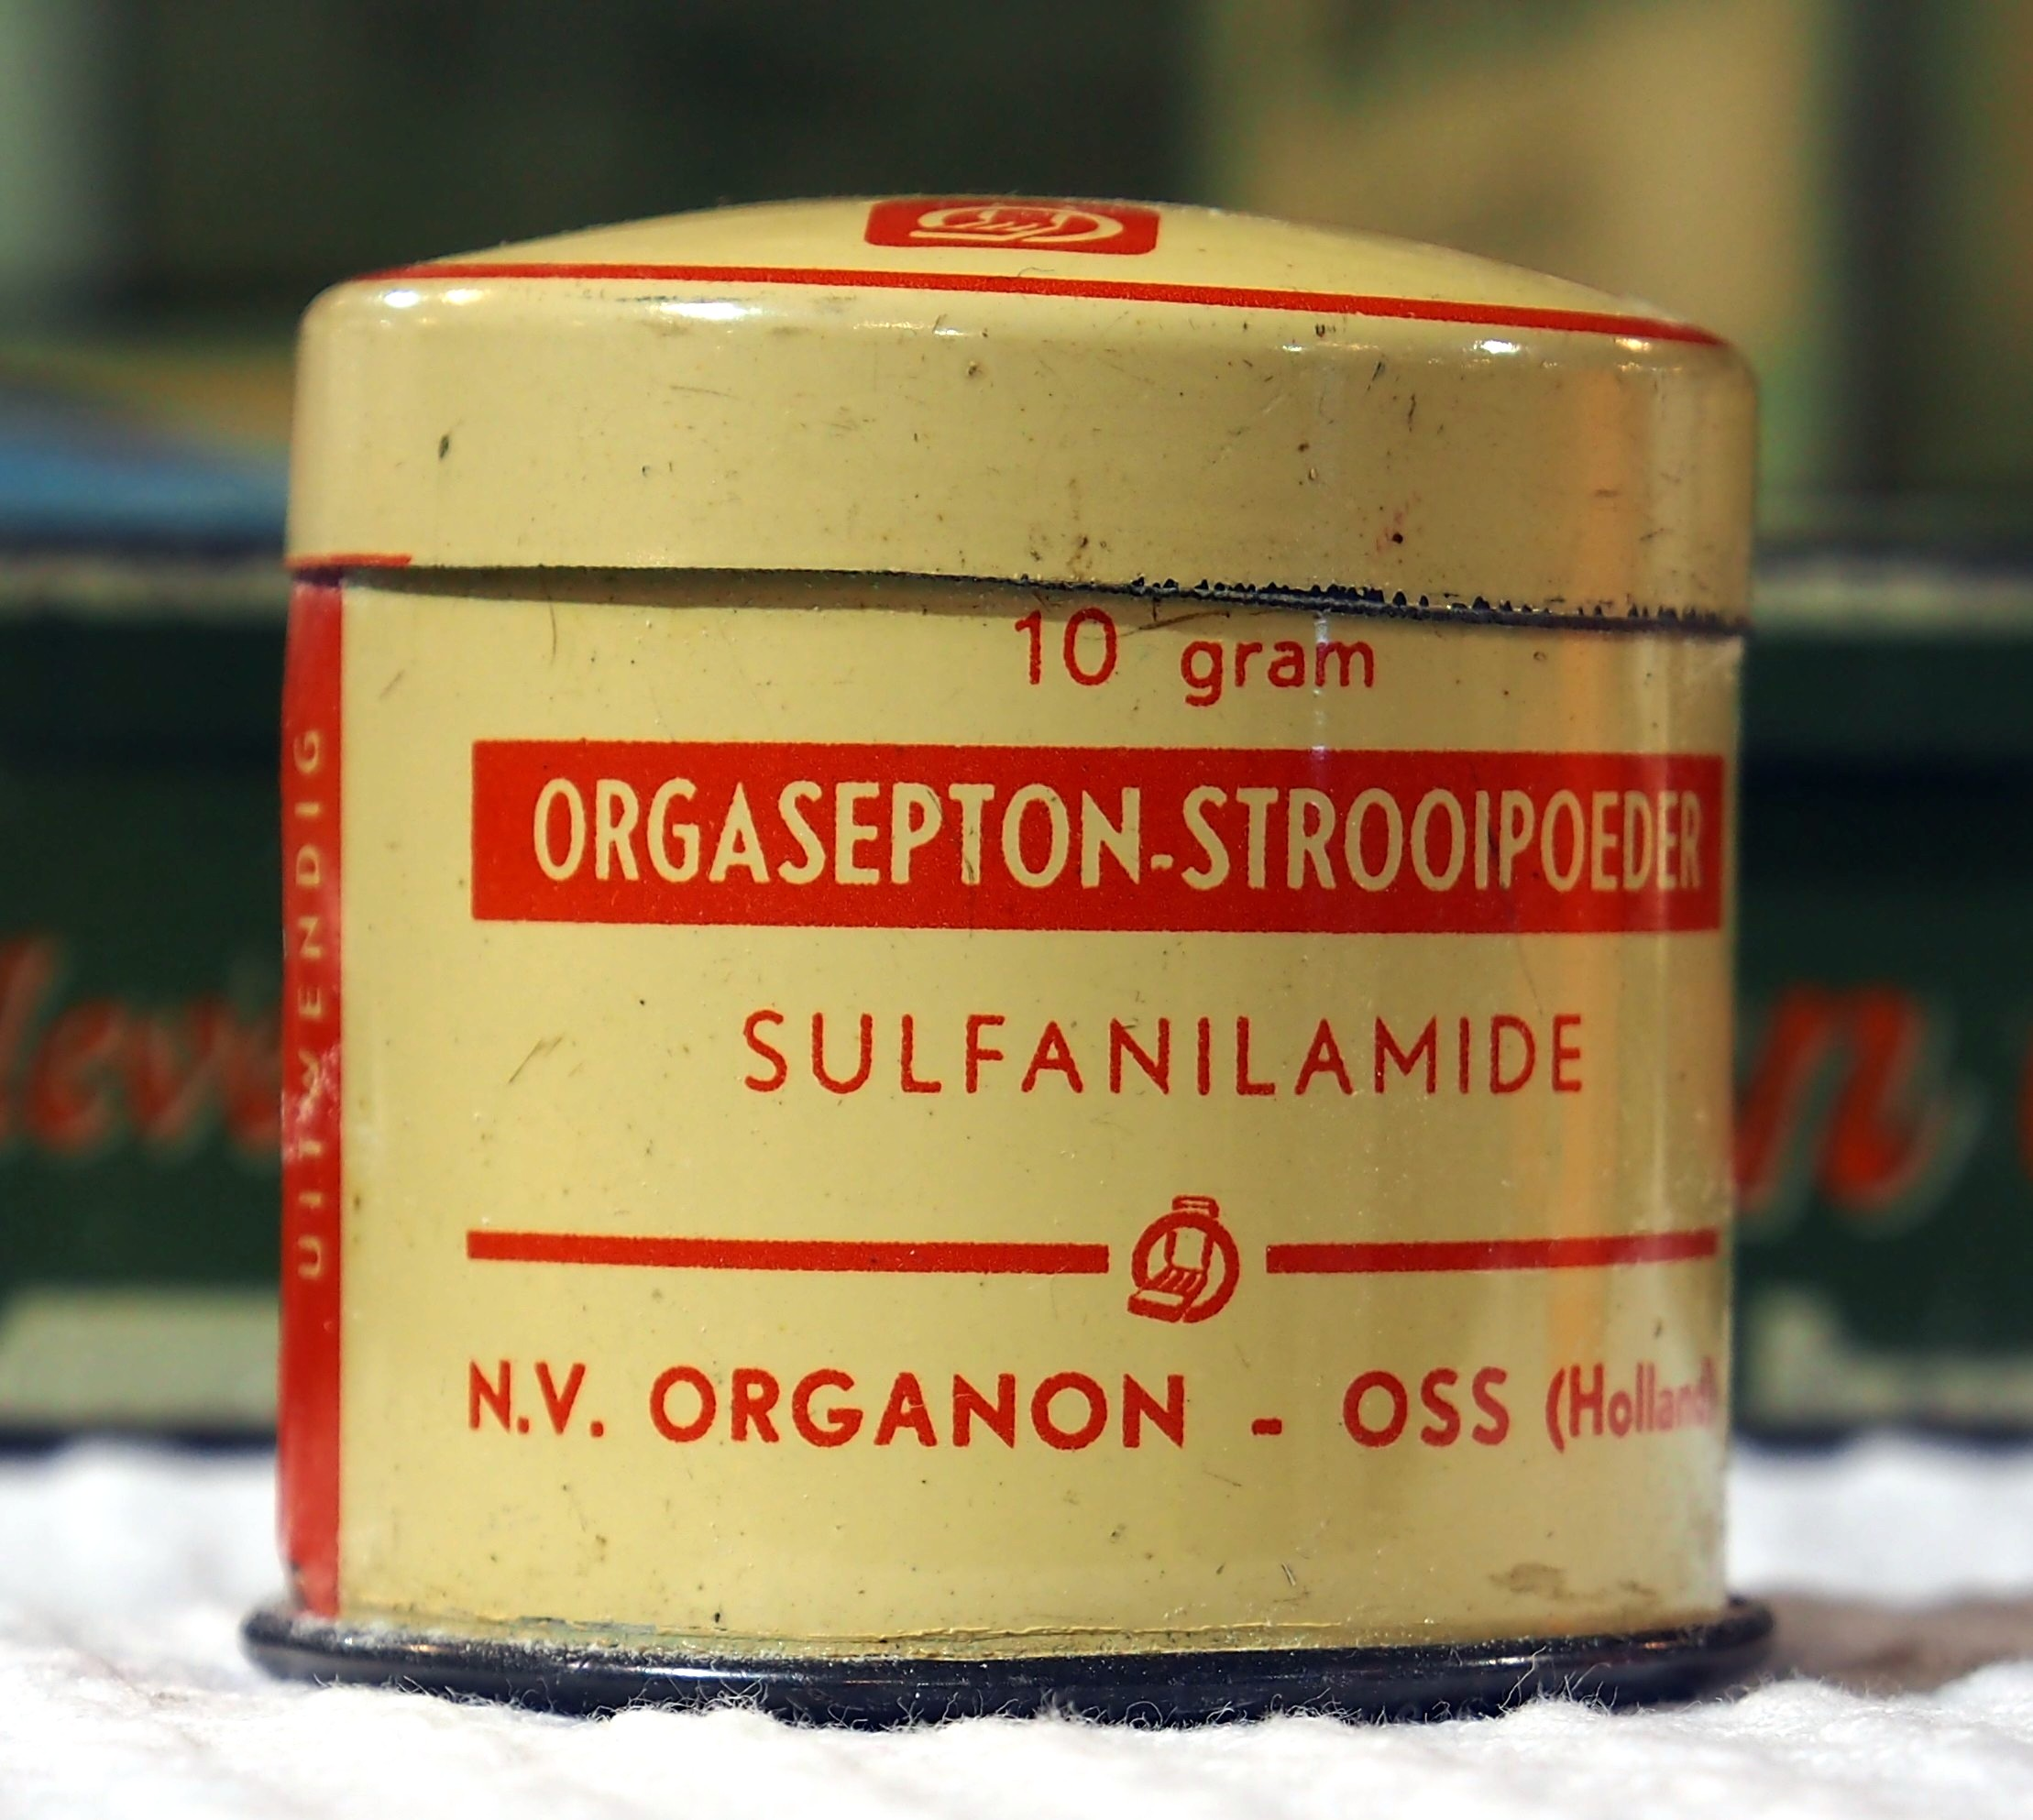 N v organon oss holland steroids in baseball research paper